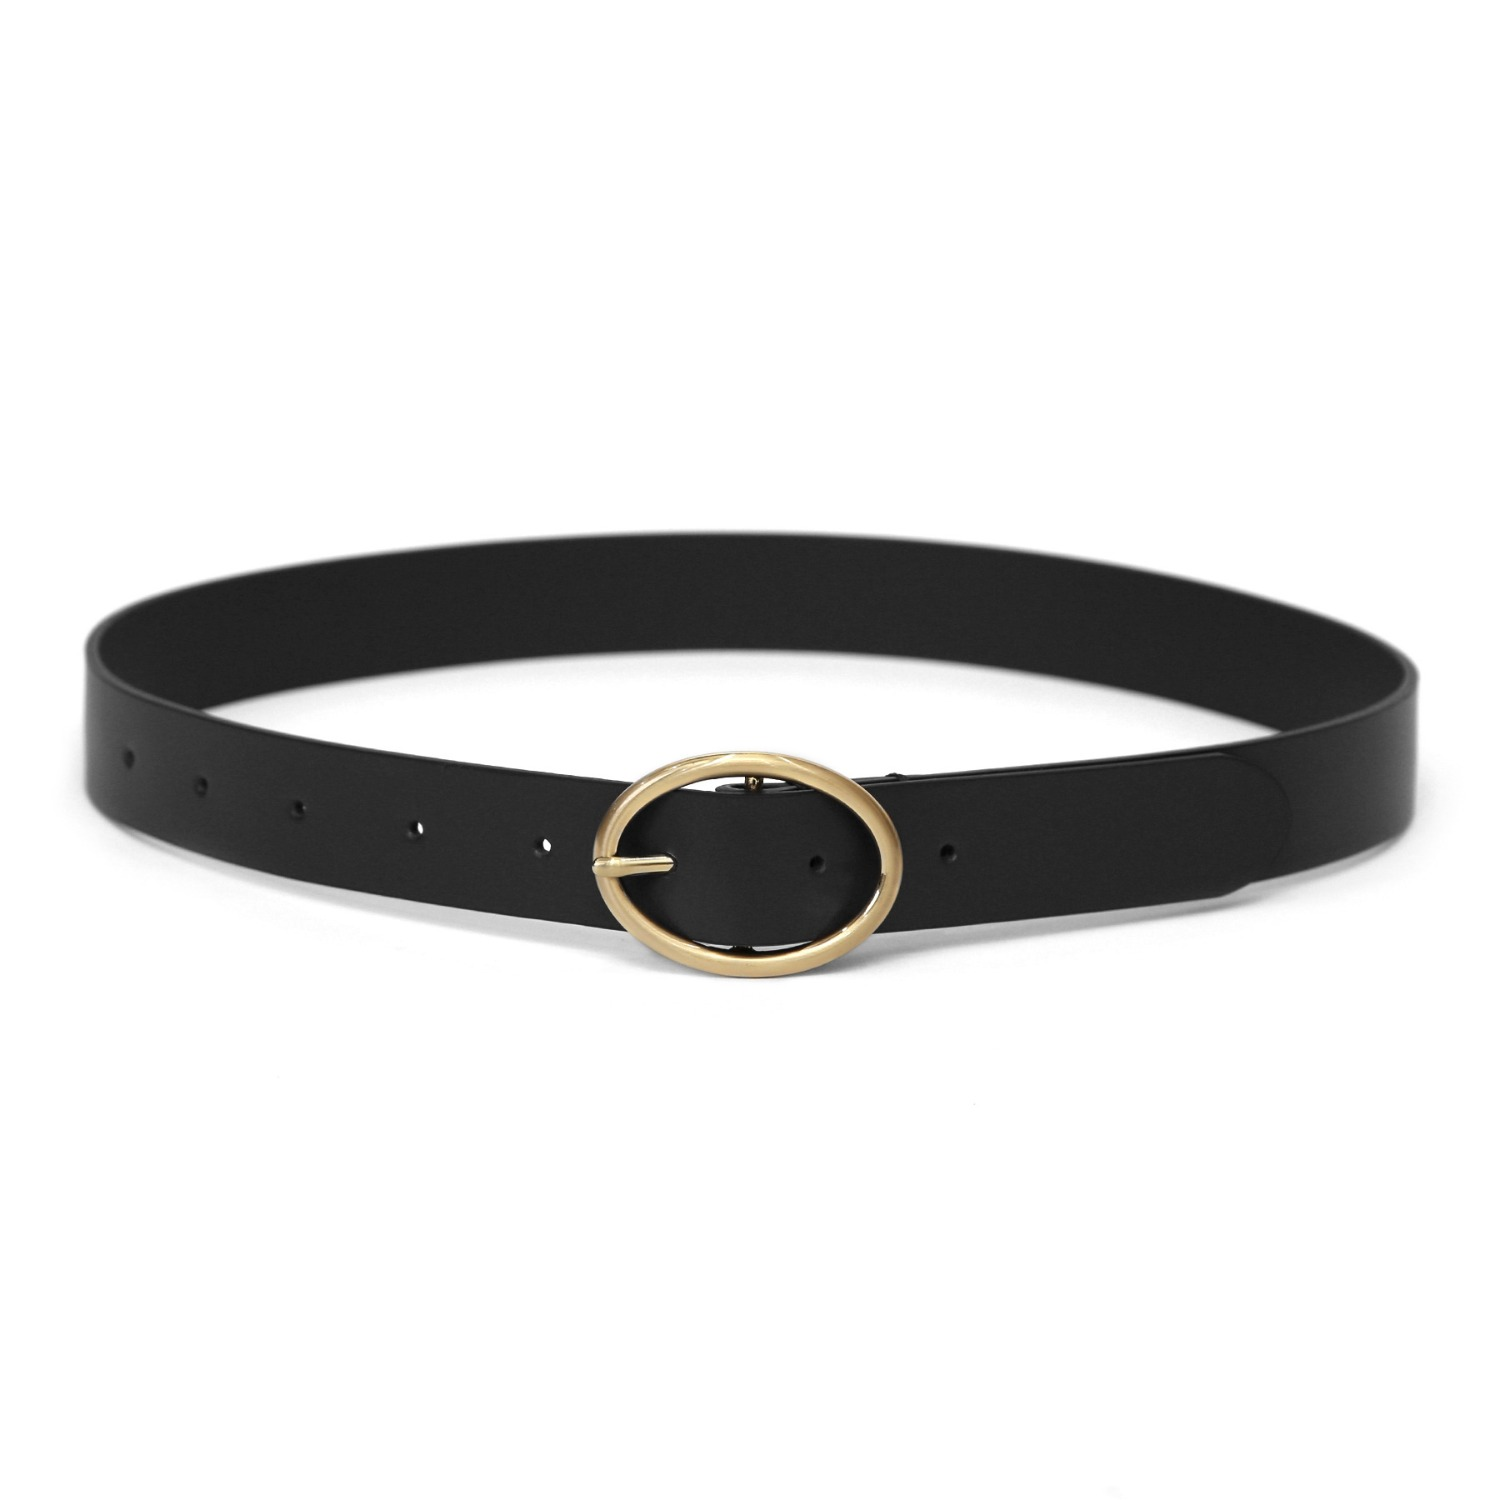 OVAL BELT / LEATHER / BLACK